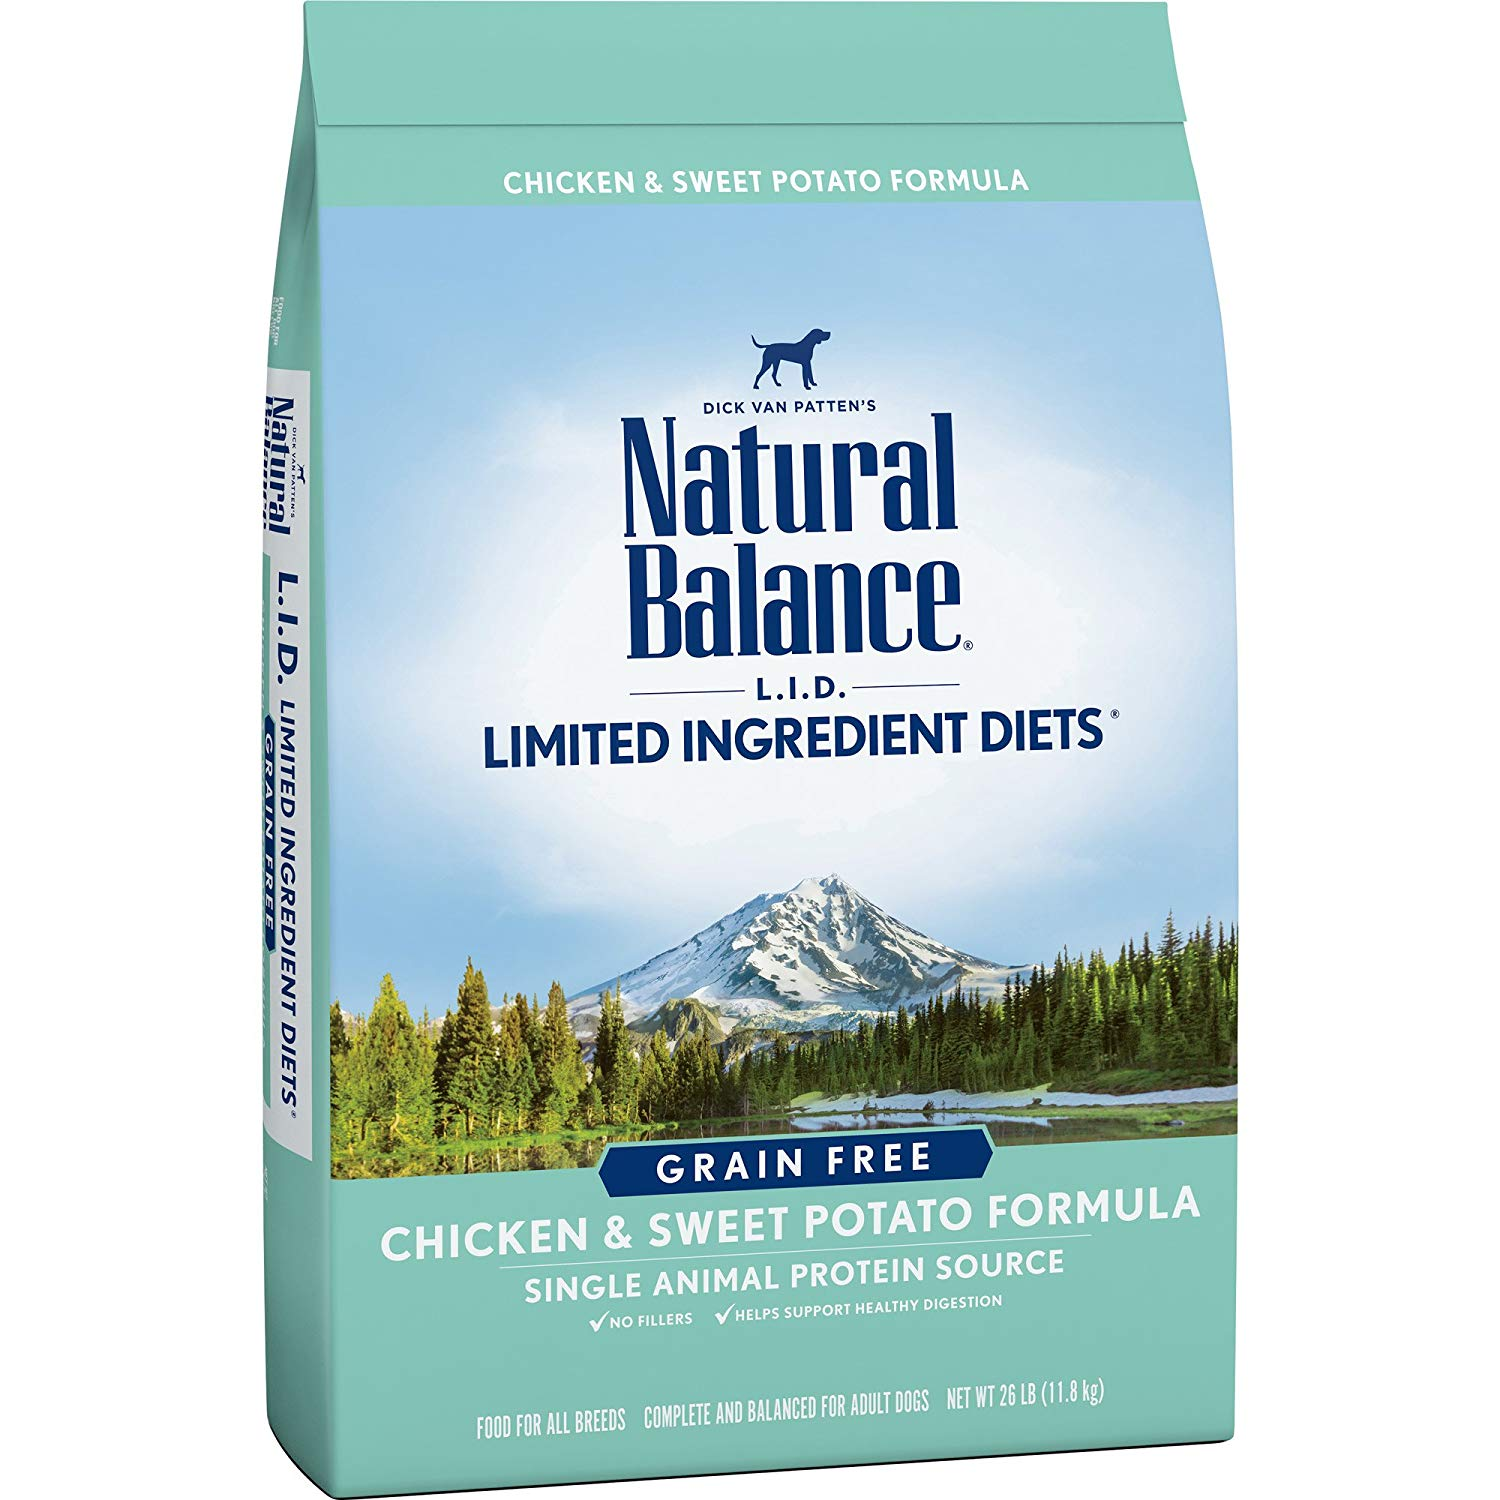 Natural Balance L.I.D. Limited Ingredient Diets Dry Dog Food, Grain Free, Chicken & Sweet Potato Formula